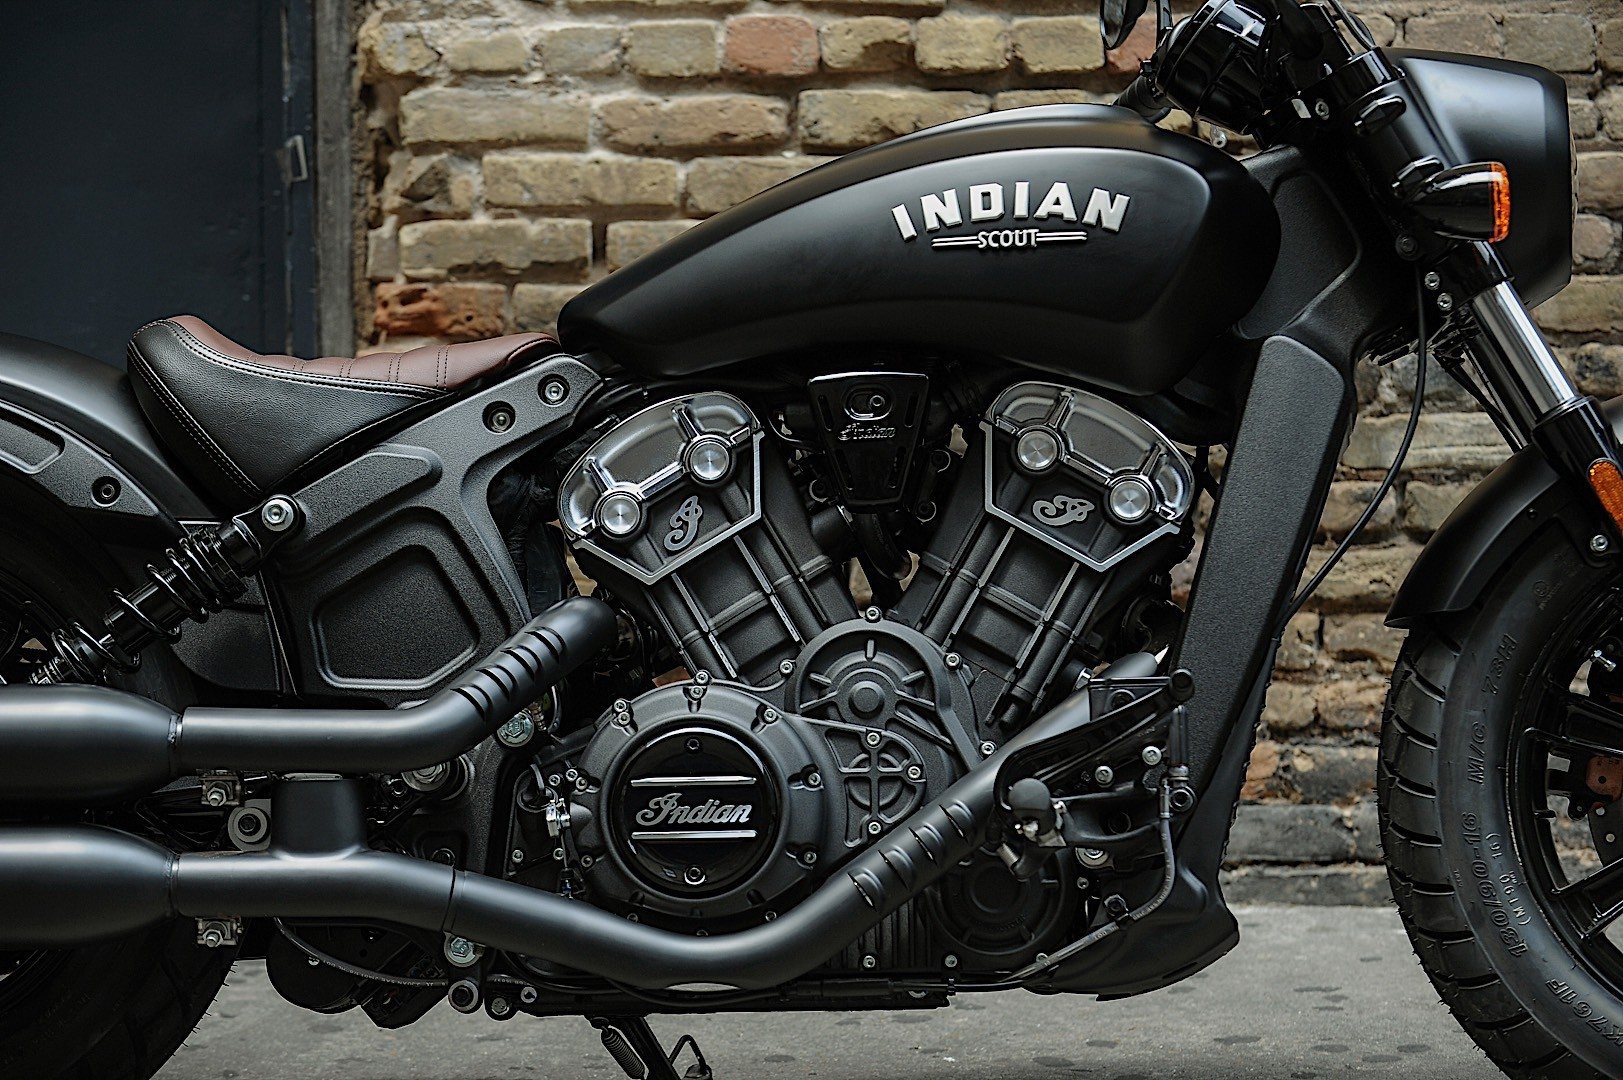 Indian Motorcycle Updates All Models For 2018, Adds Two ...